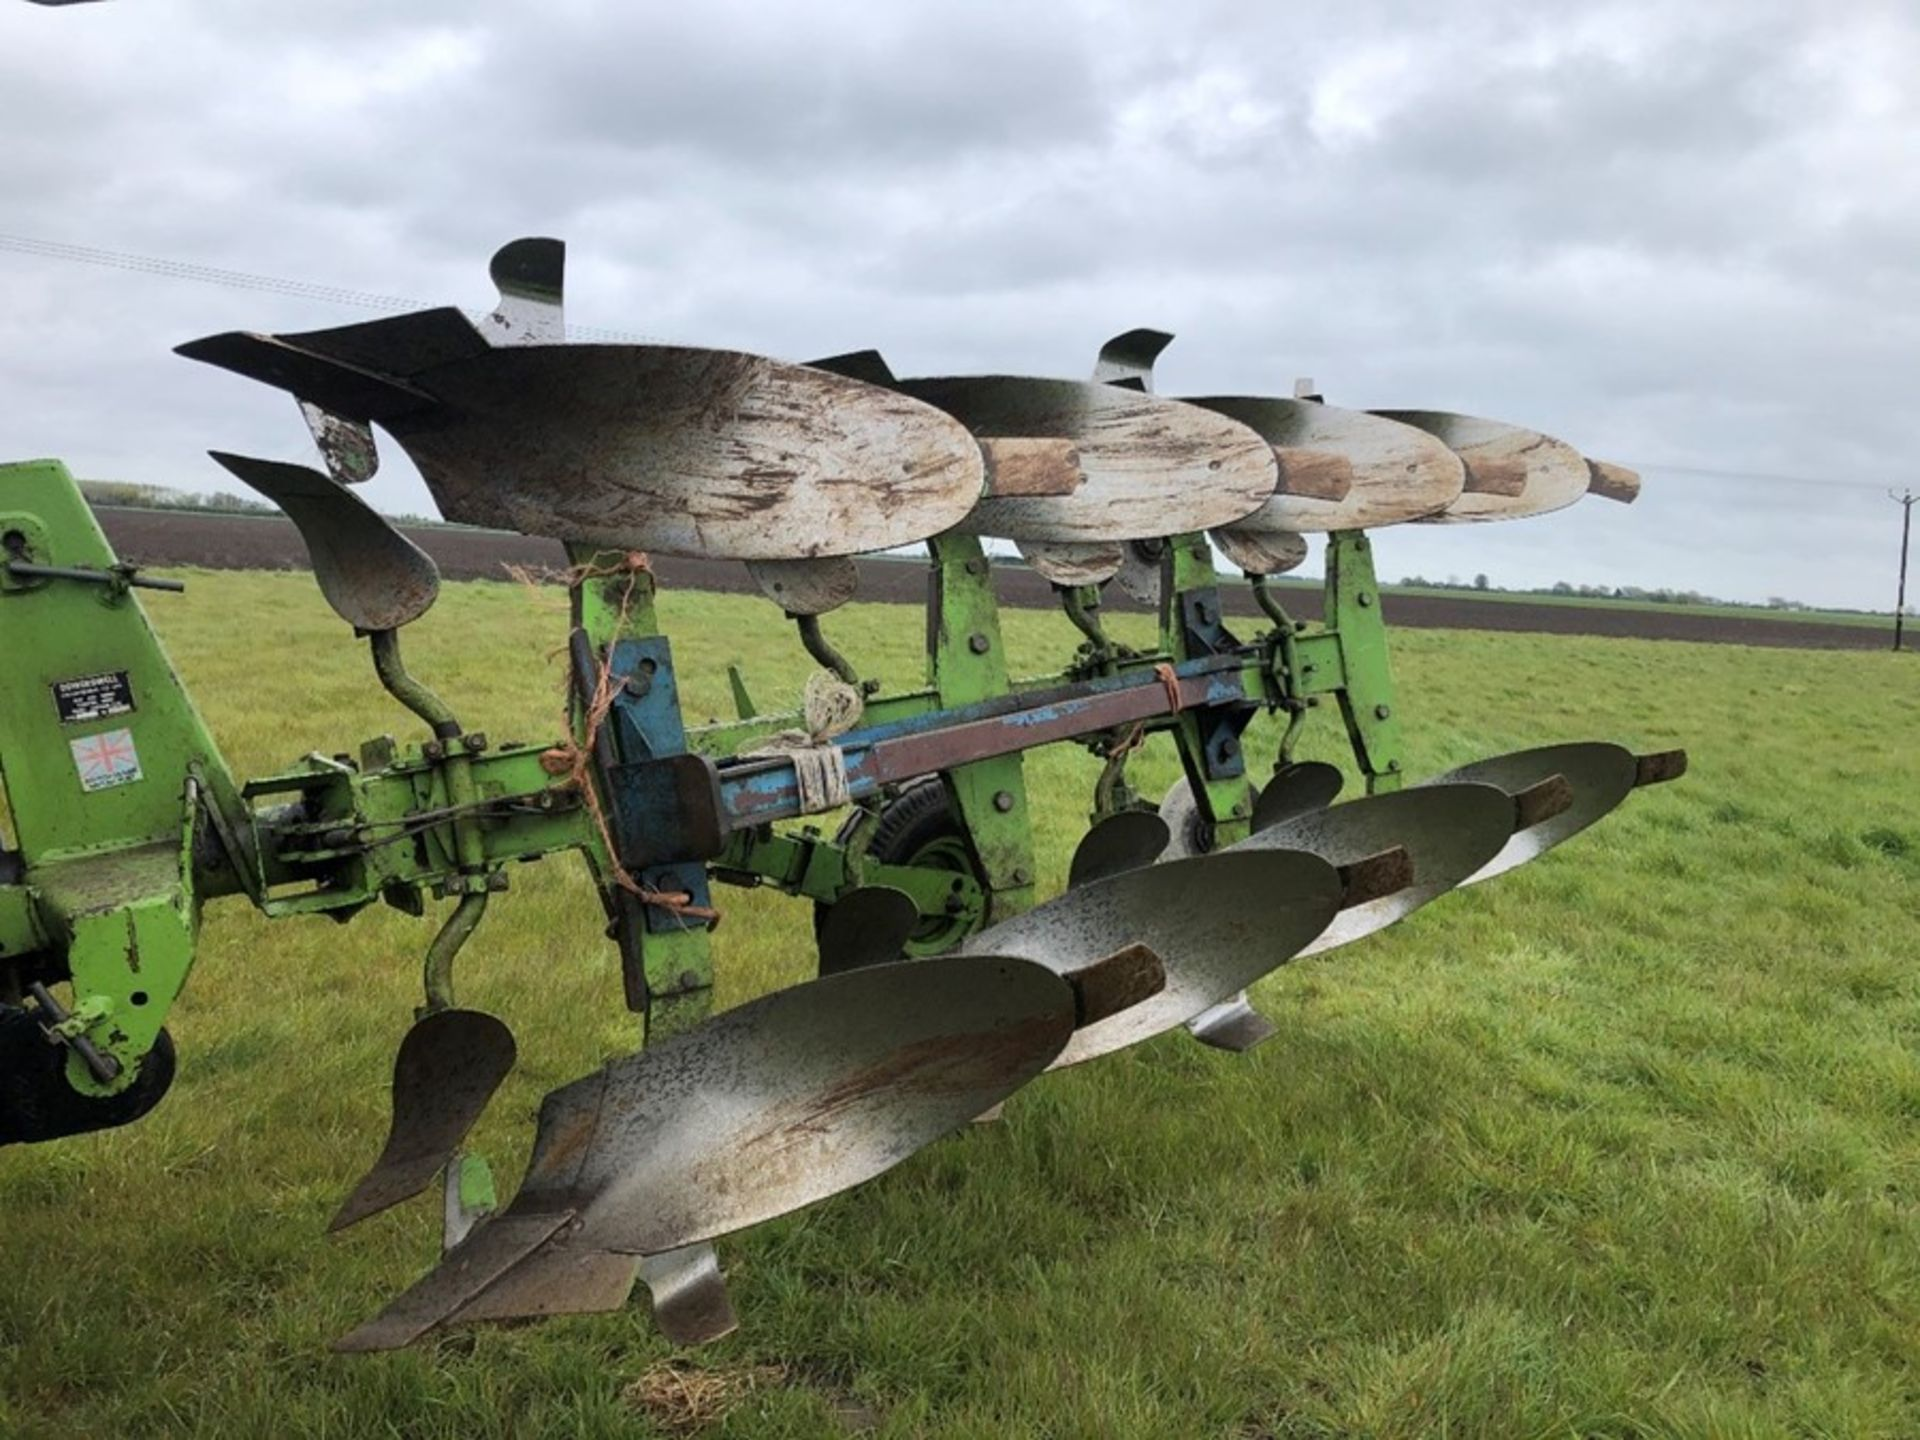 Dowdeswell DP7C 4F reversible plough, 3+1 frame, serial no: 514341496, manual in office